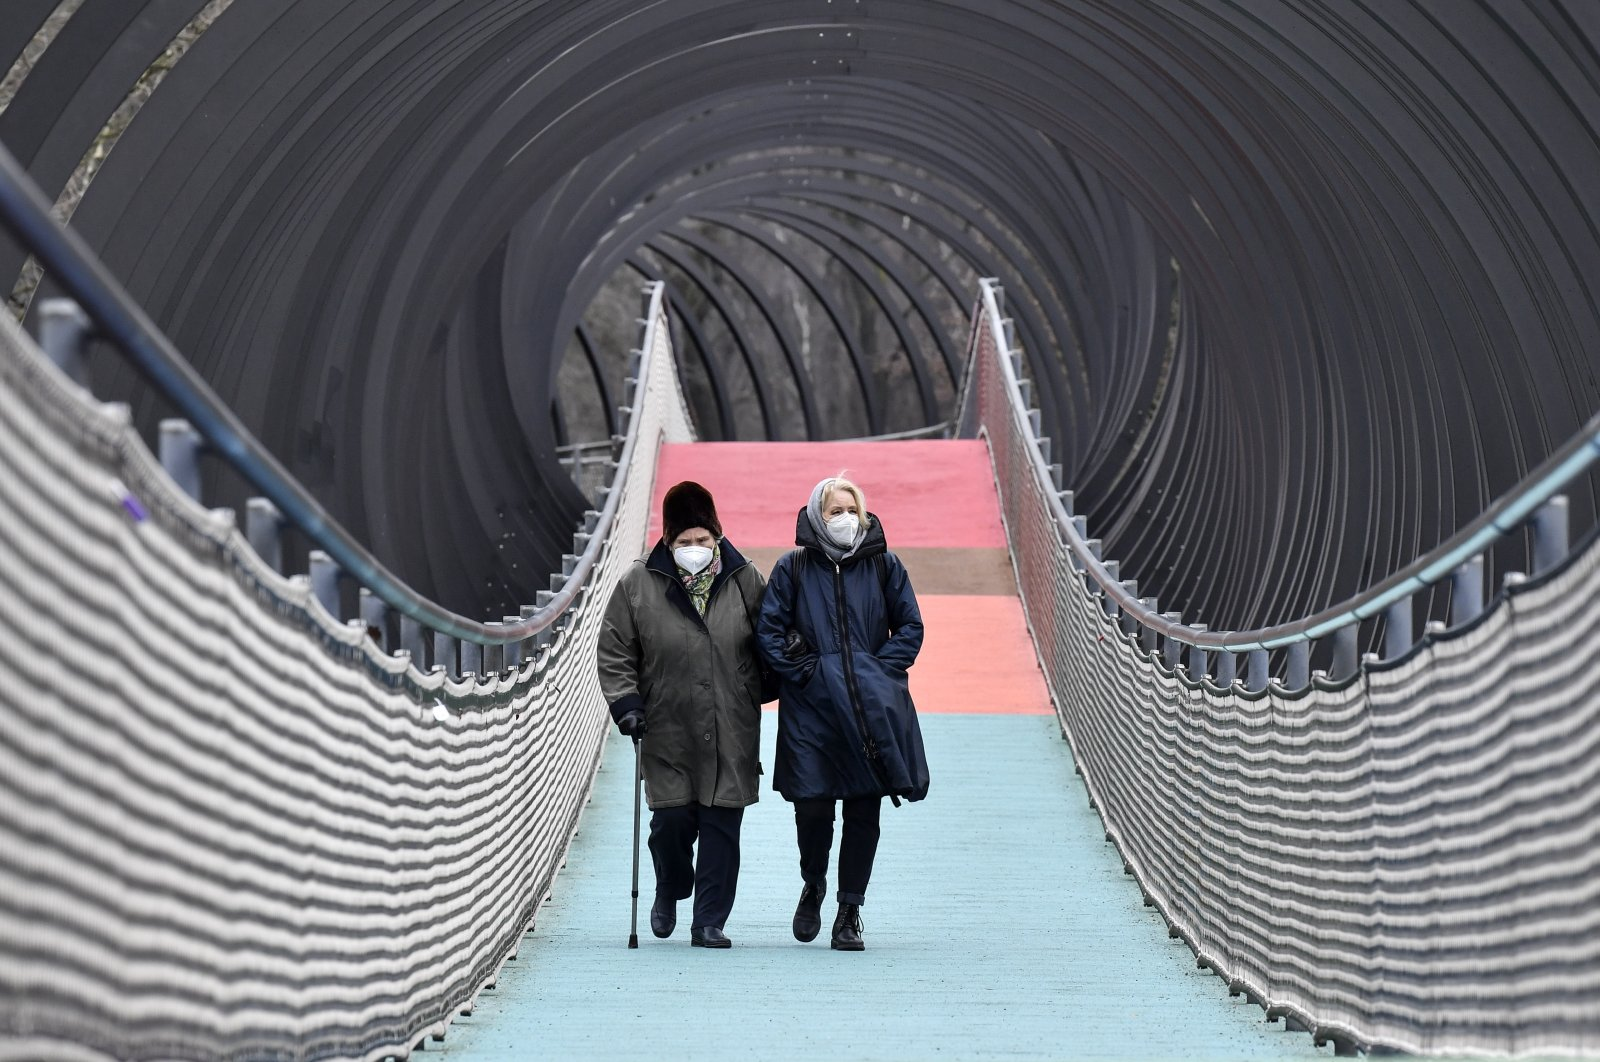 People wear protective face masks as they walk over a bridge during the lockdown in Oberhausen, Germany, on Monday, Jan. 11, 2021. (AP Photo)